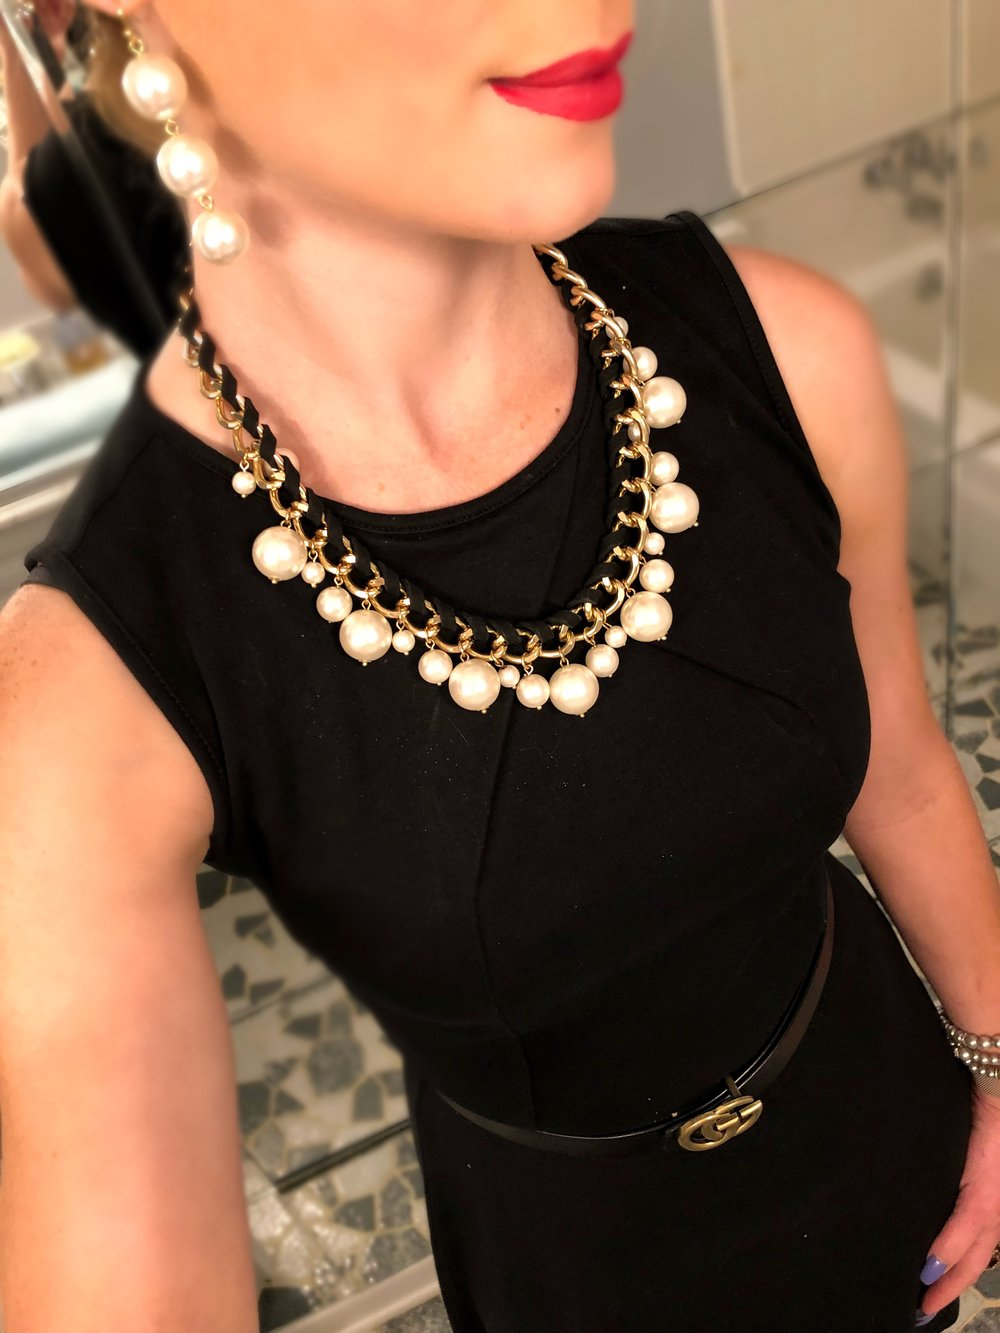 A favorite, classic combo of an LBD, pearls, red lip, and Gucci Belt